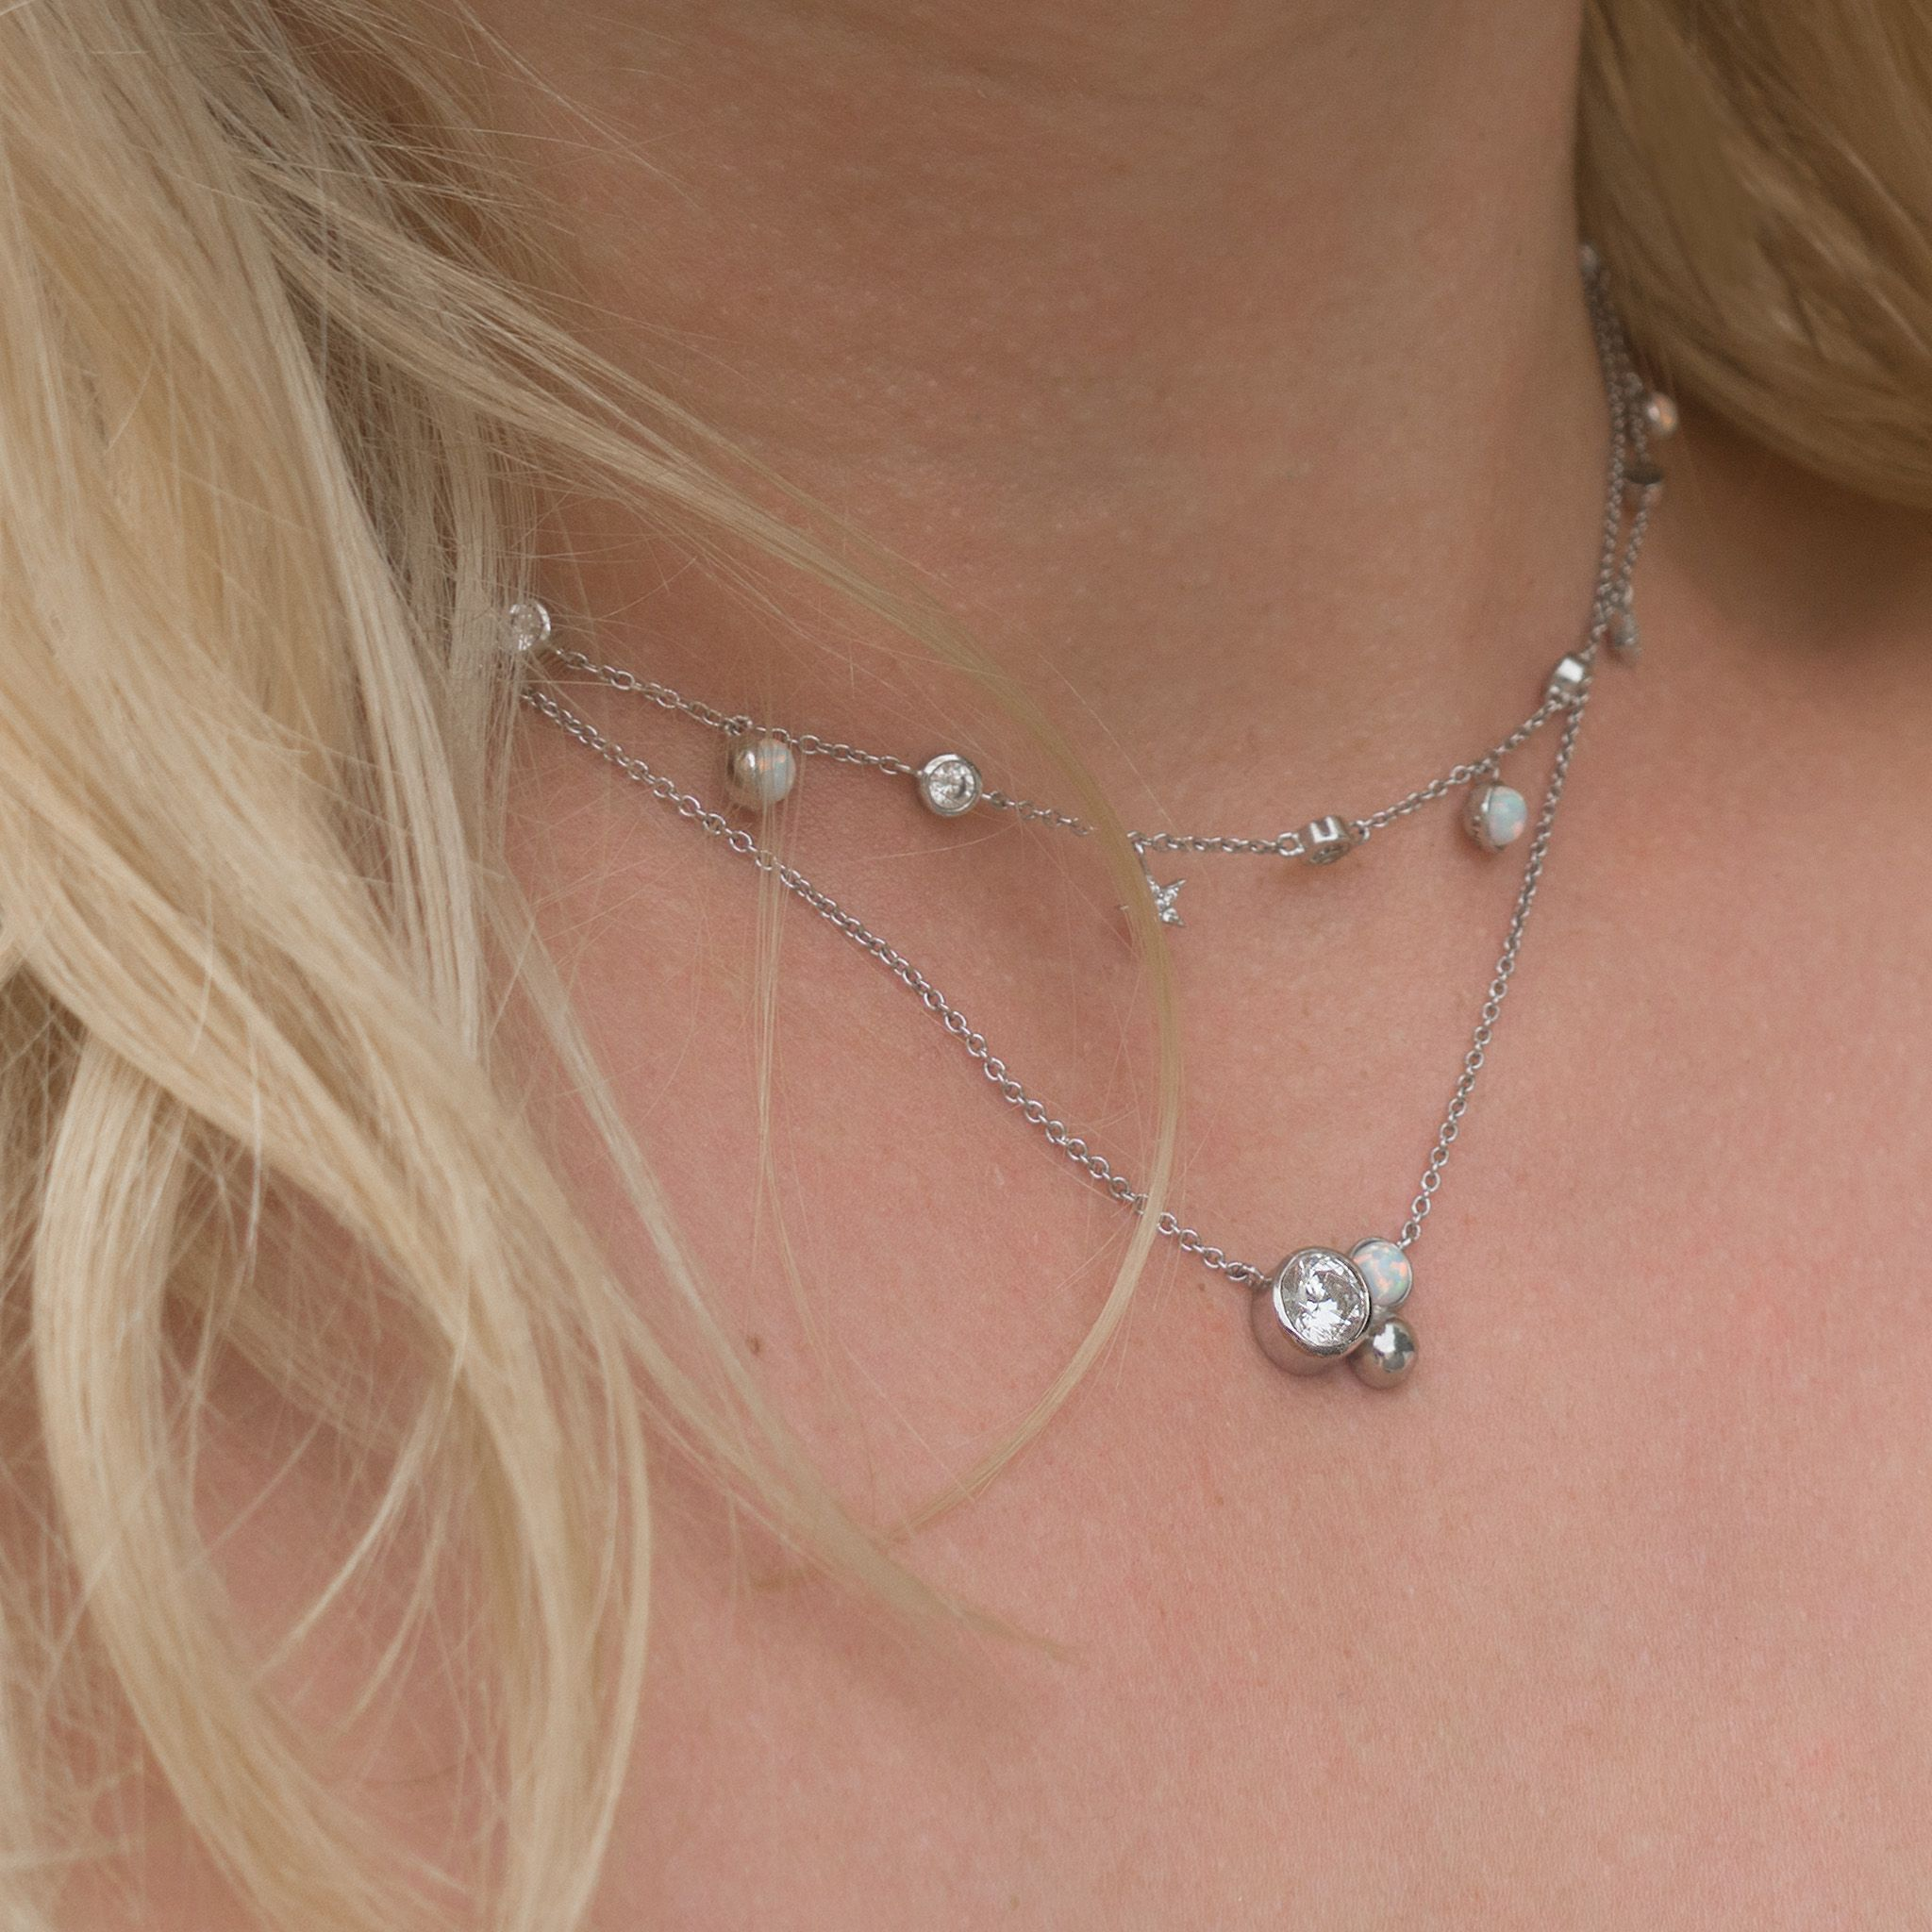 Modern Classics We believe jewellery should be both beautiful and meaningful  the perfect addition for your big day